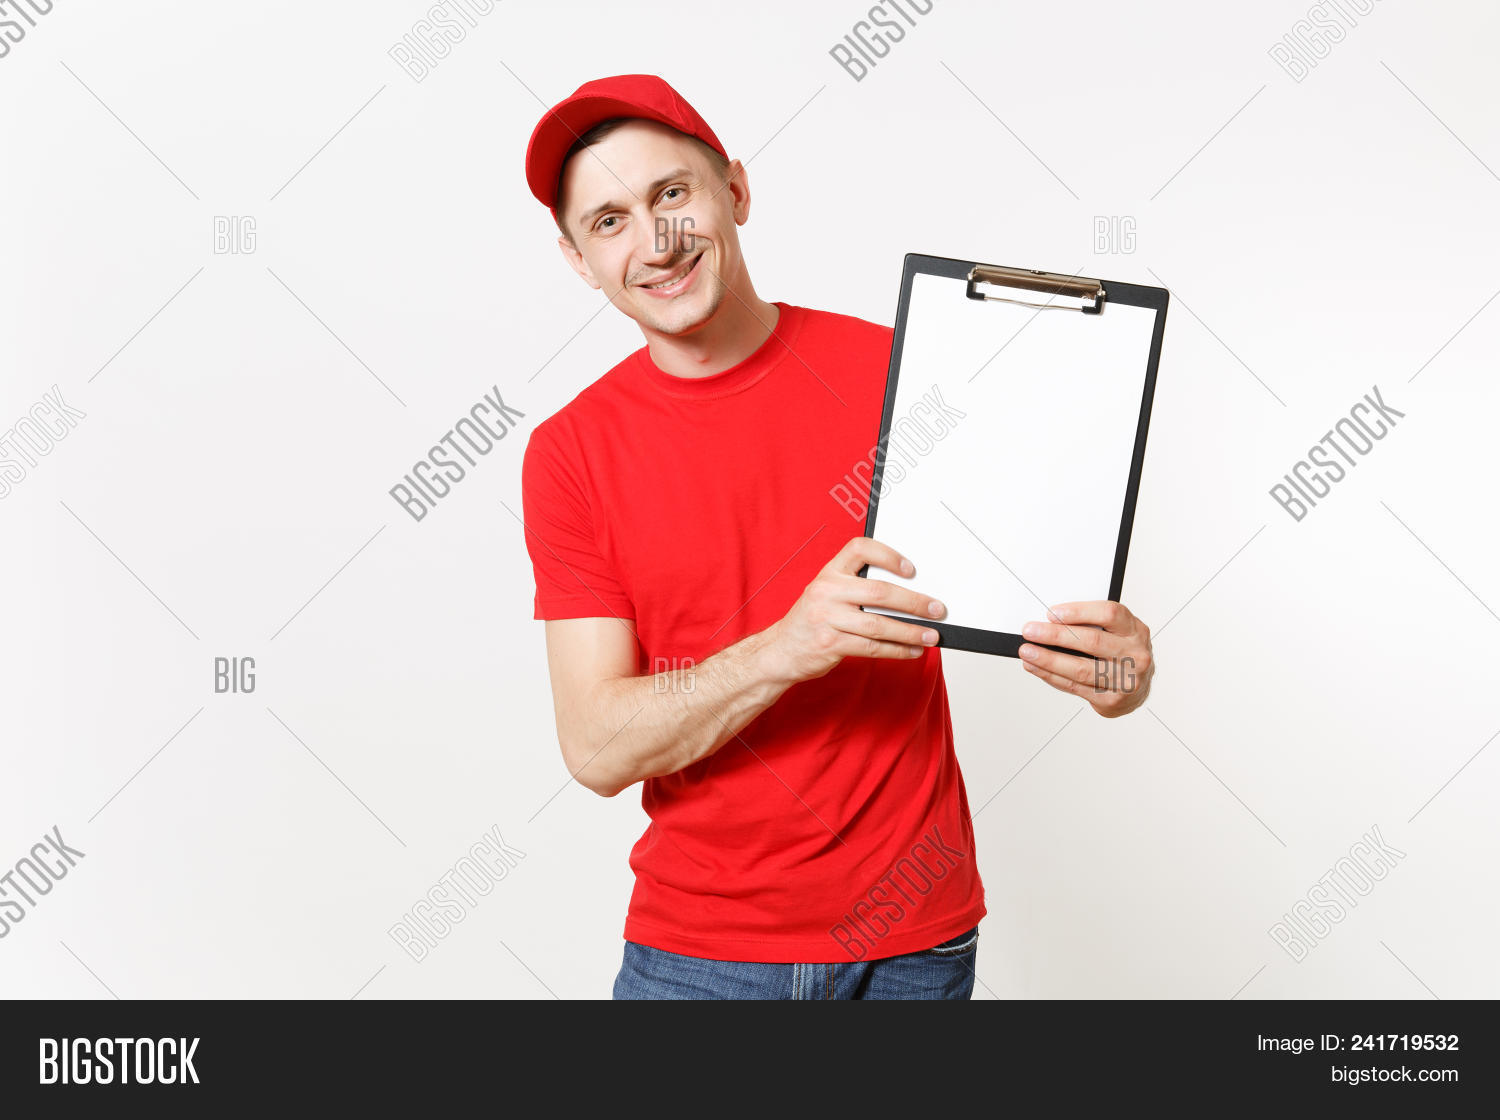 556d91b5 Delivery man in red uniform isolated on white background. Male in cap, t- shirt, jeans working as courier or dealer, holding pen, clipboard with  papers ...